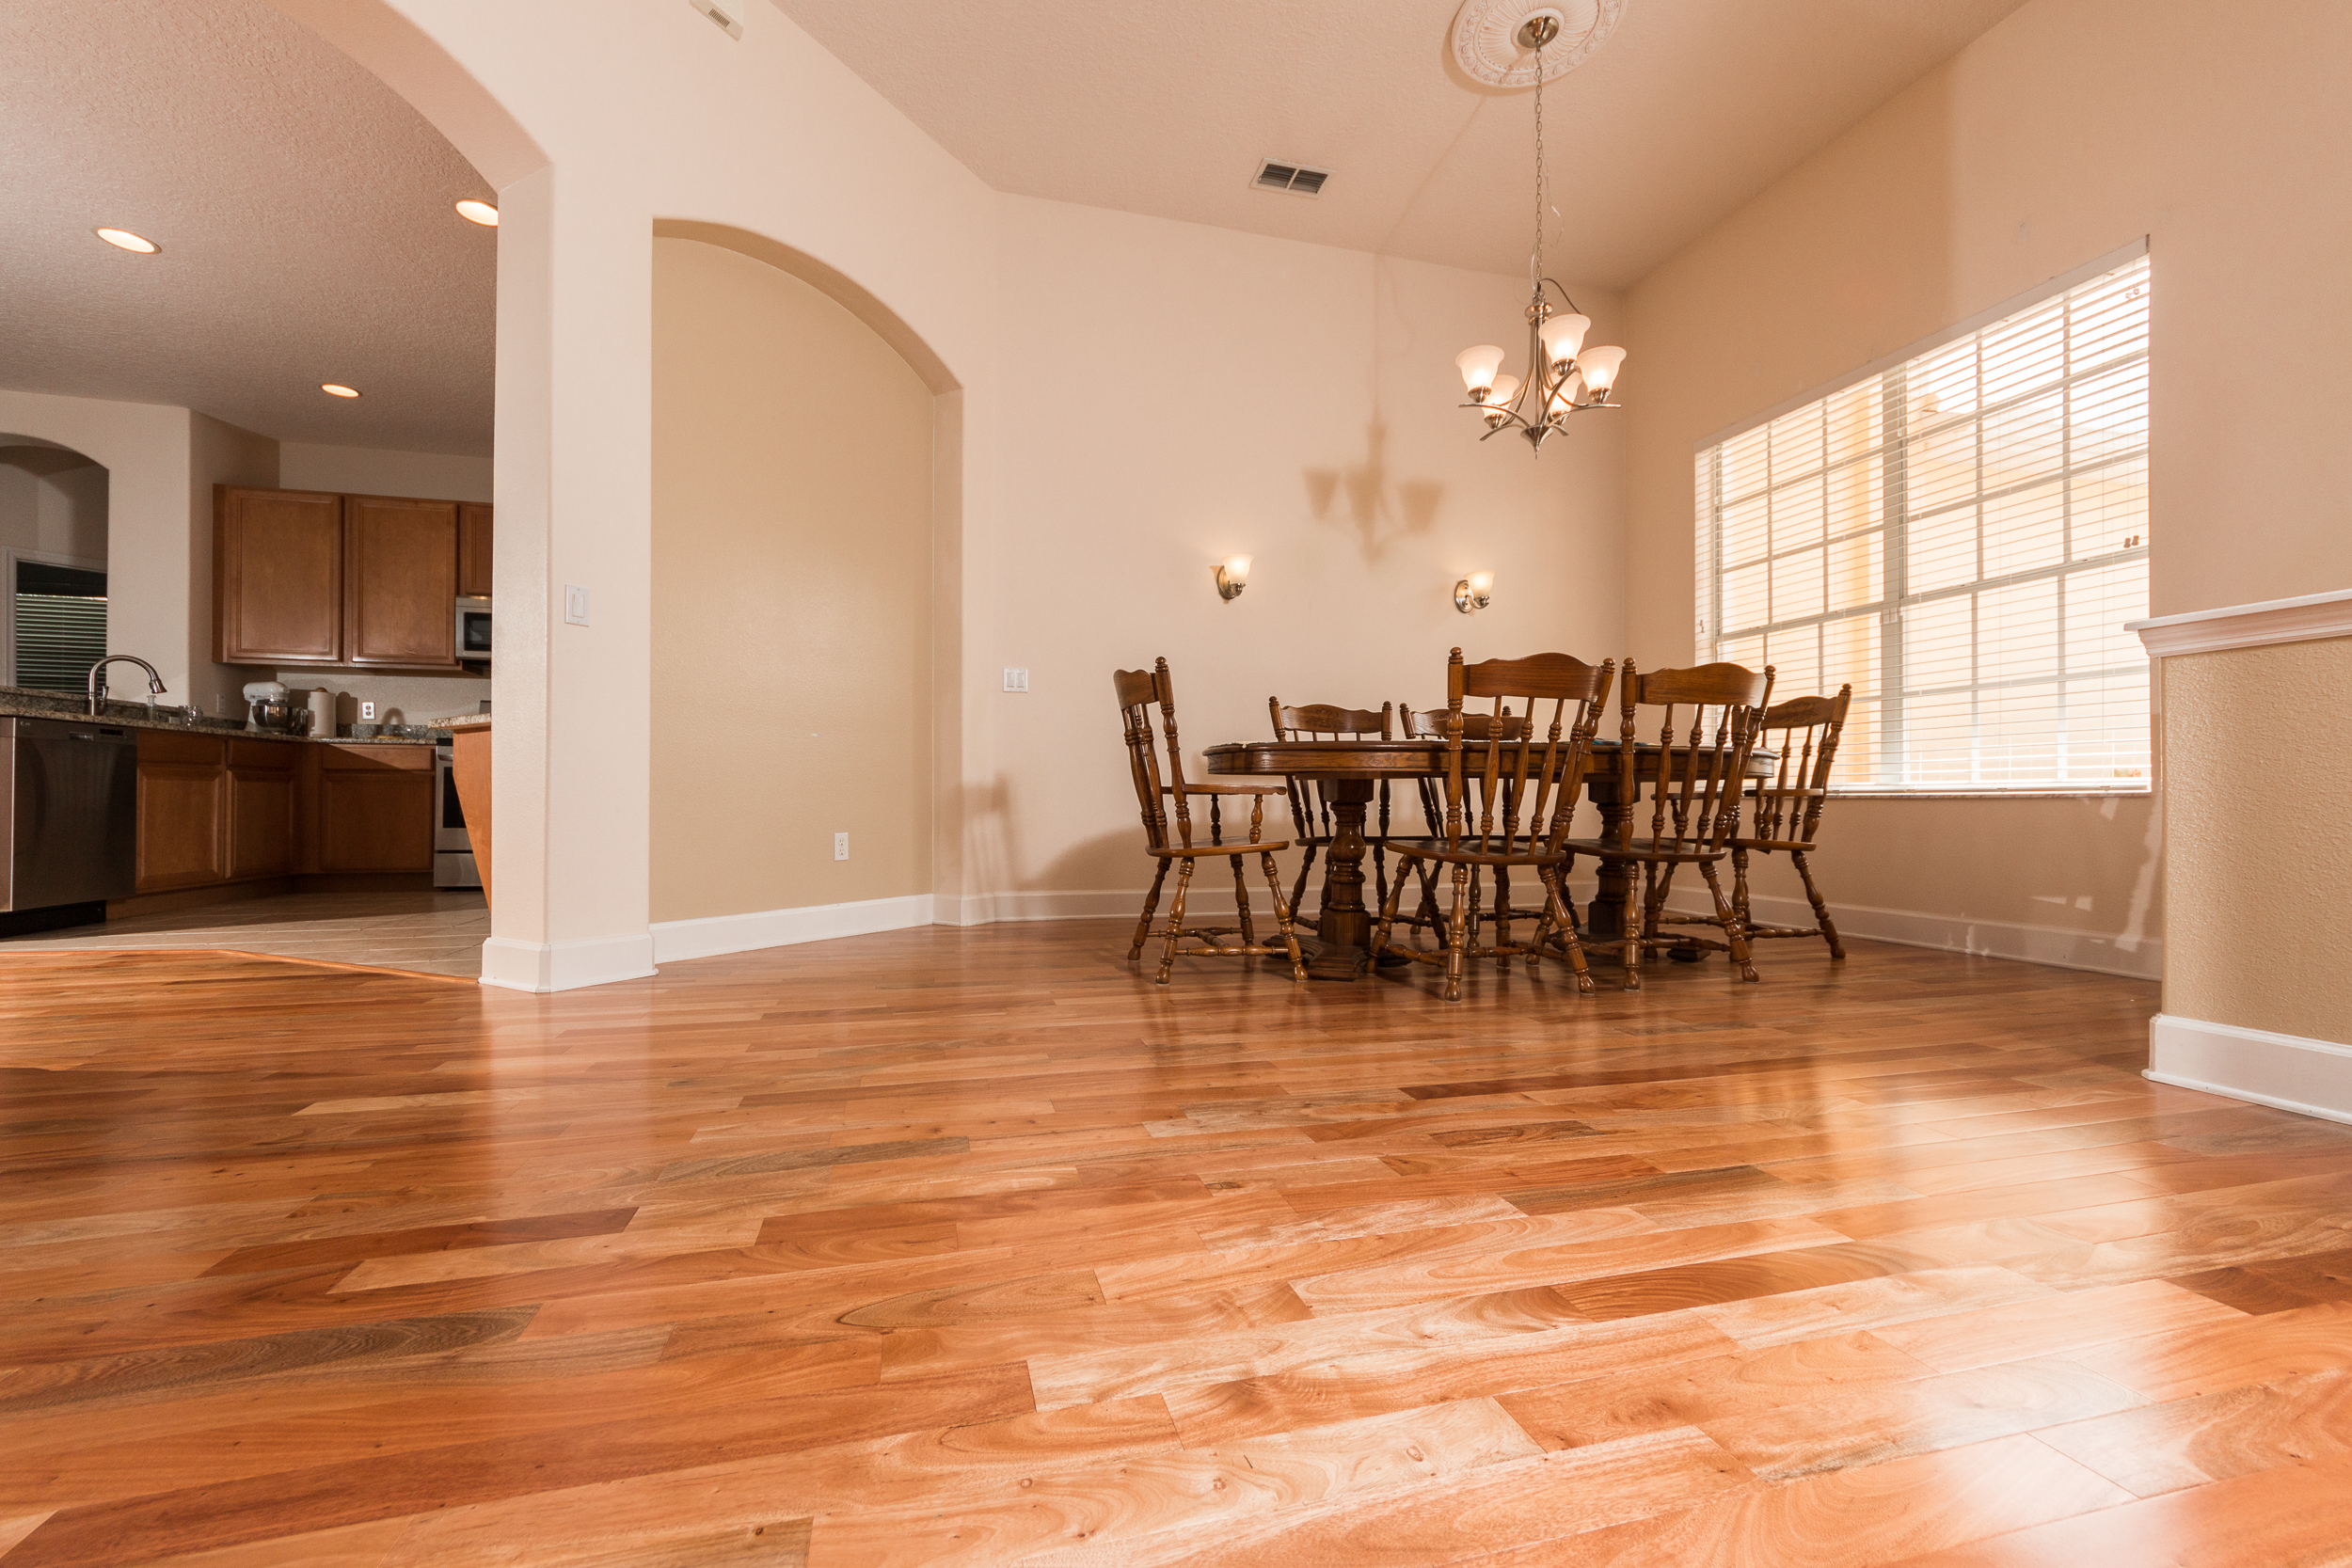 Brazilian Amendoim Wood Flooring in Dining Room